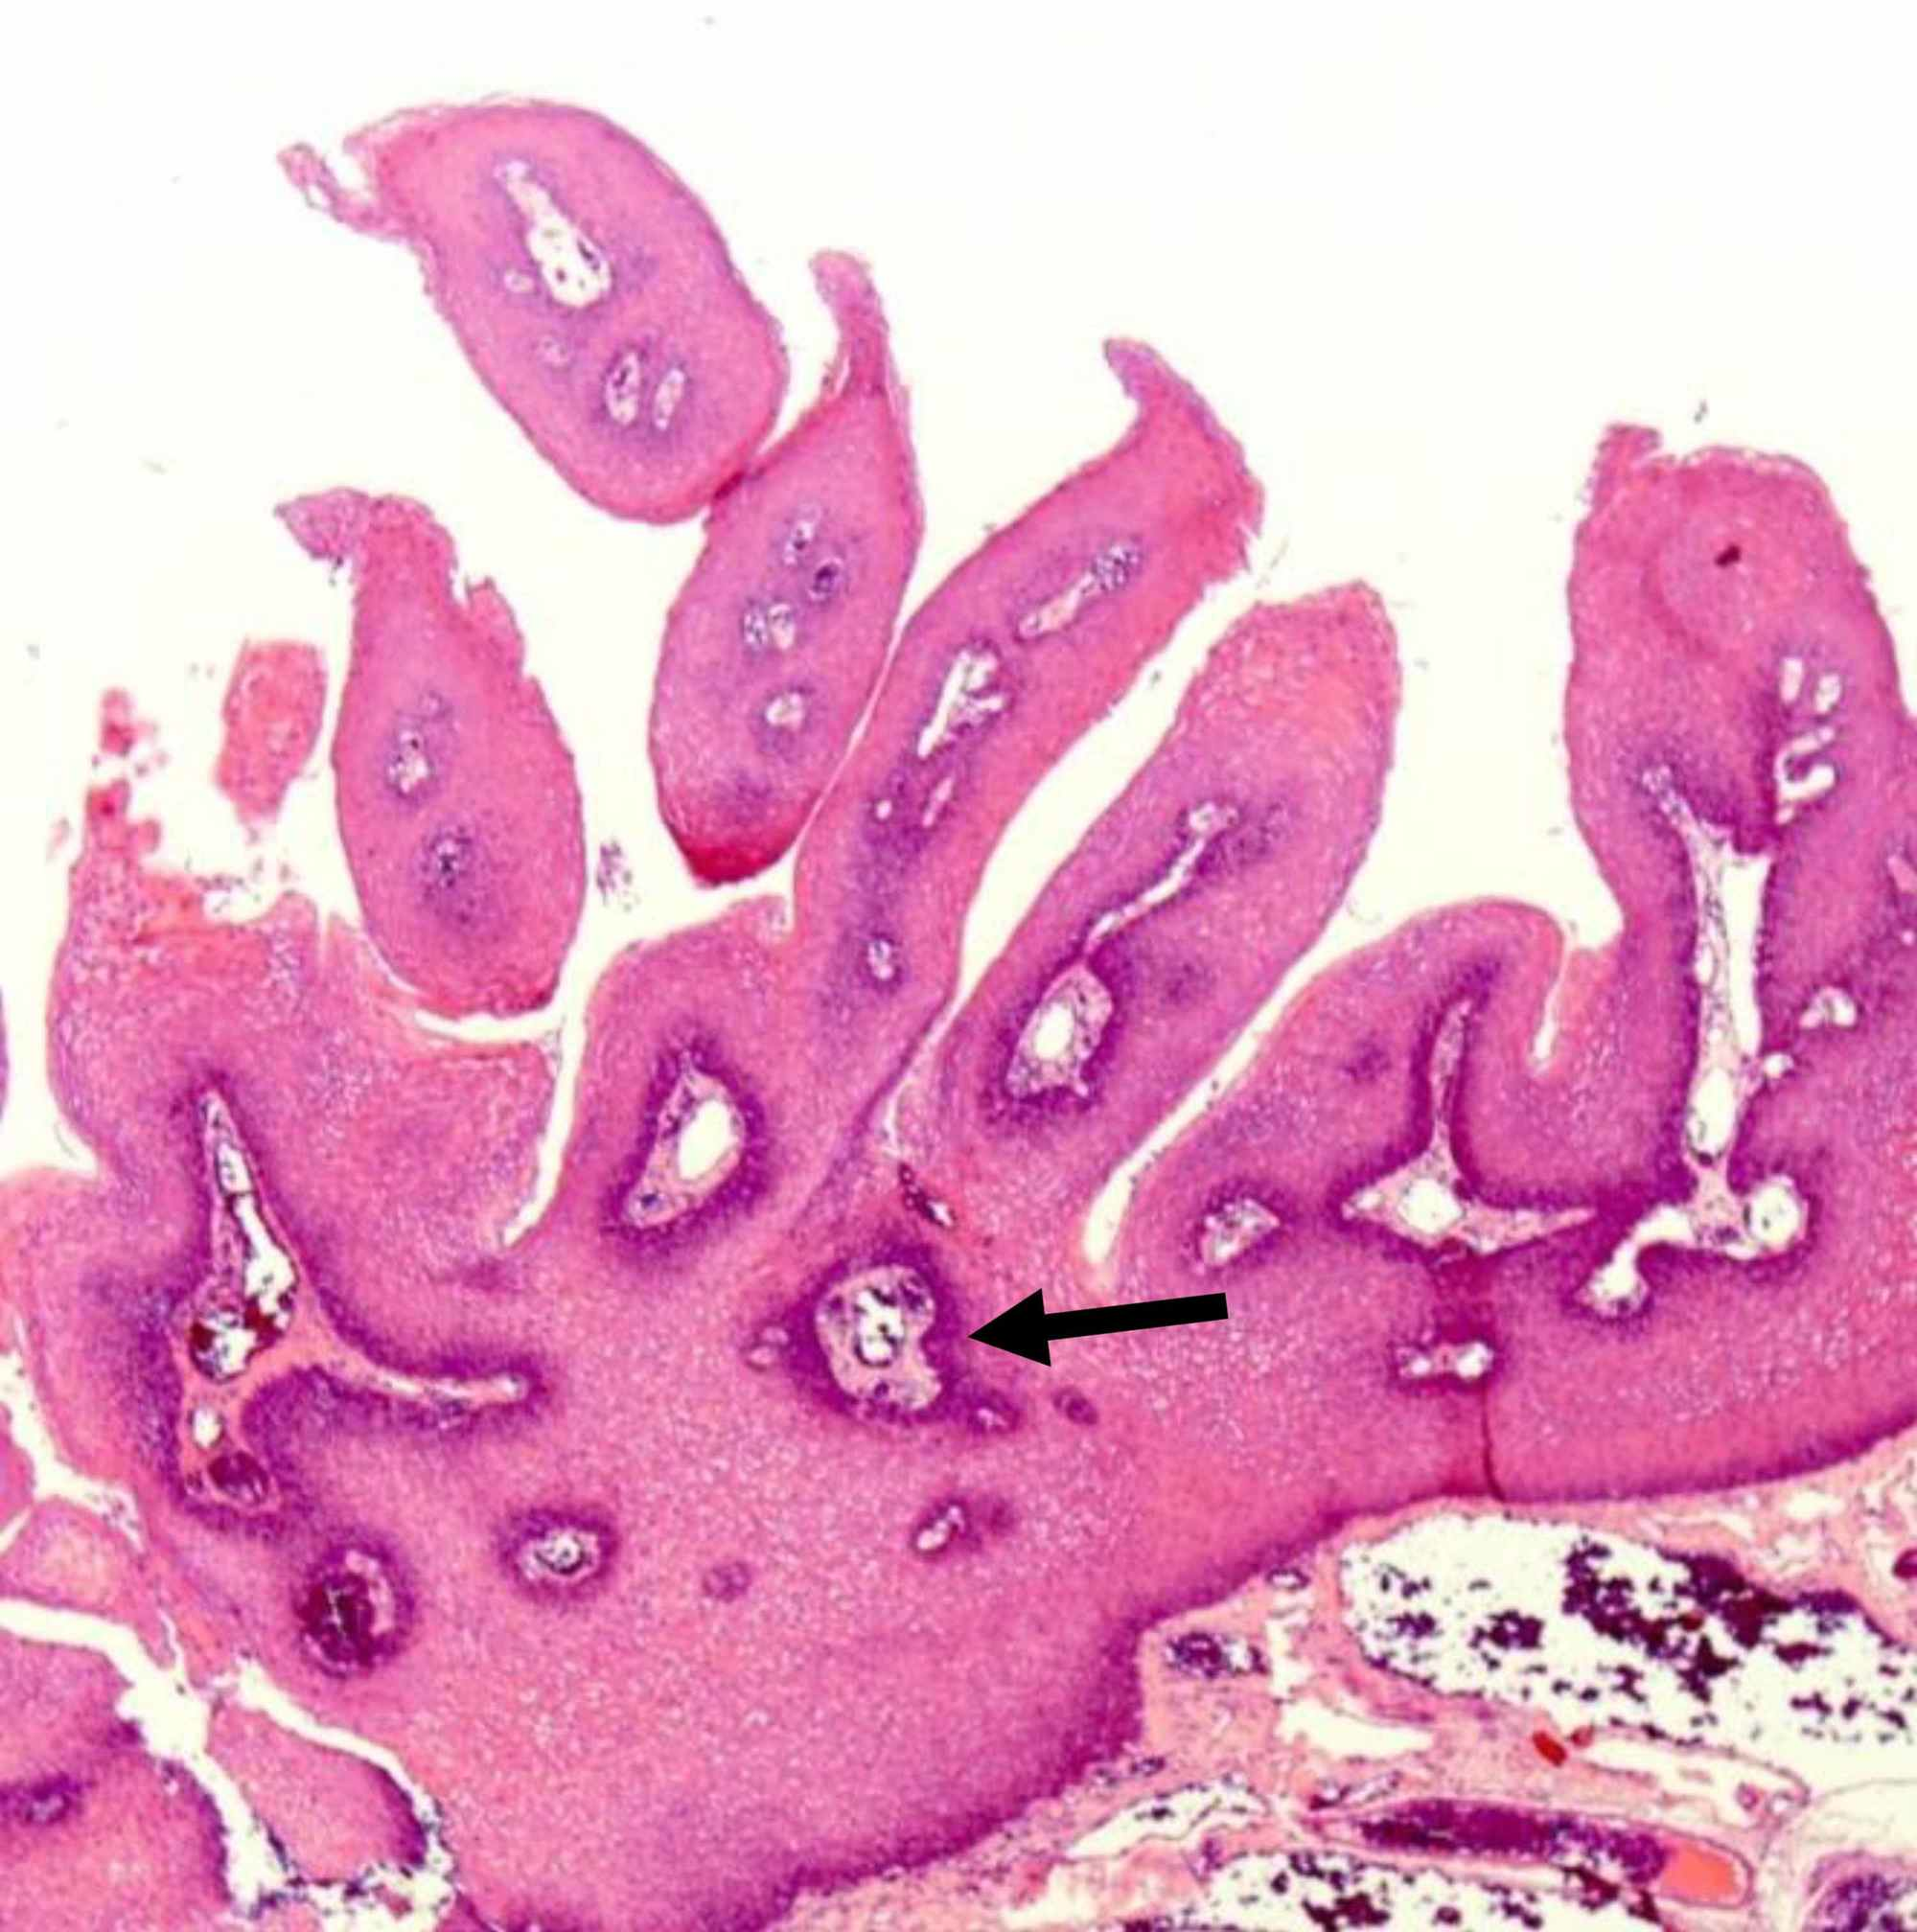 squamous papilloma review articles